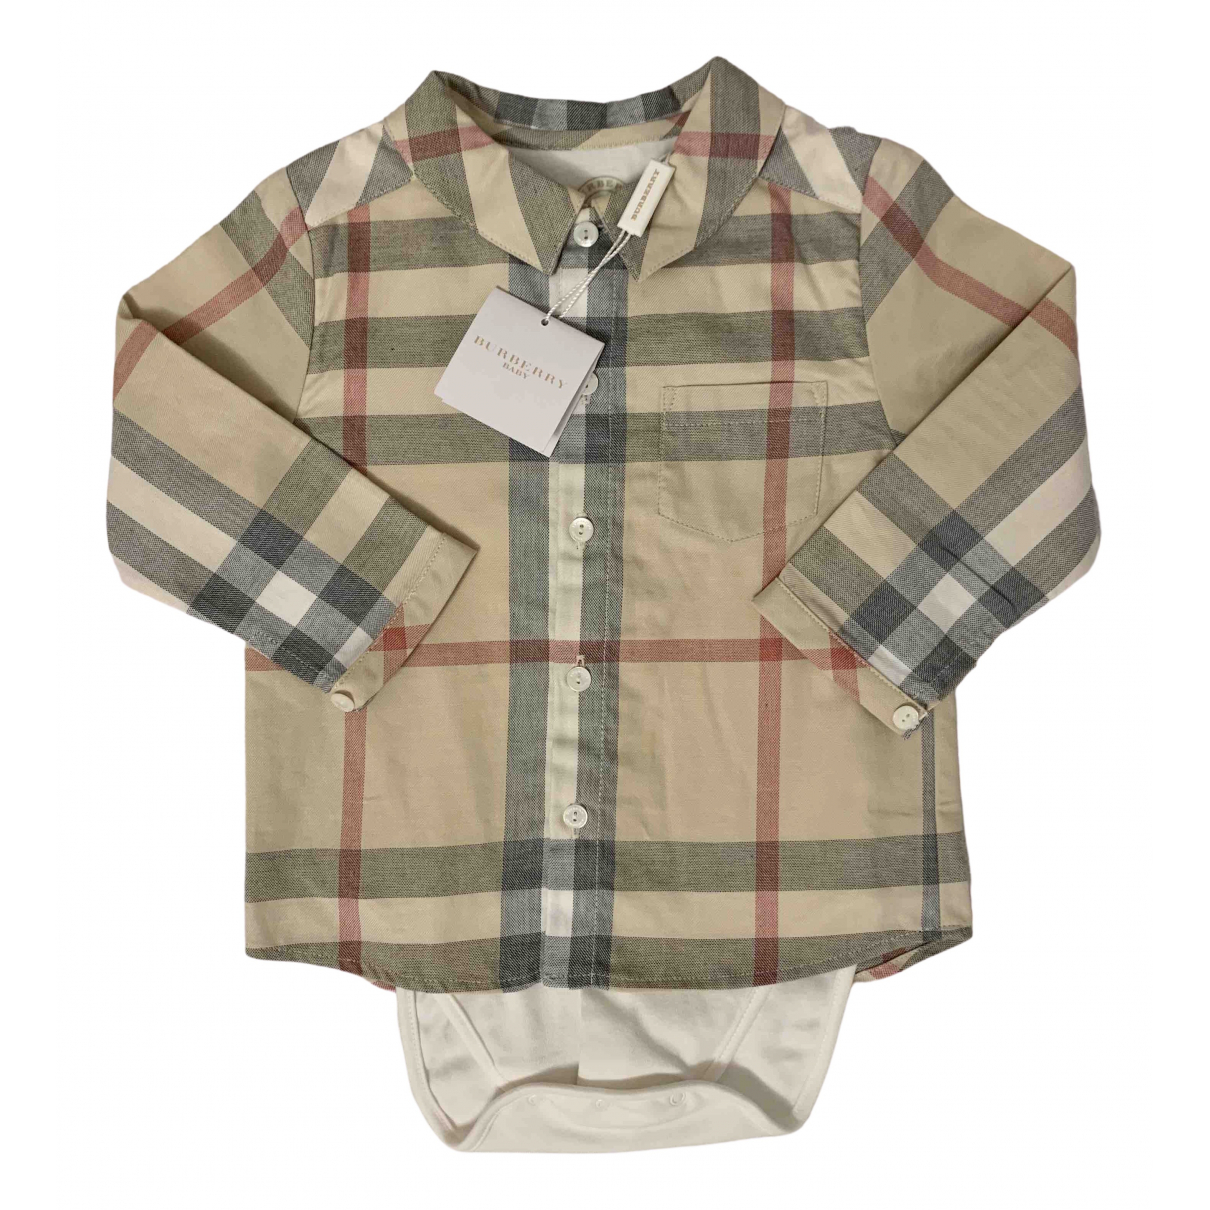 Burberry \N Cotton Outfits for Kids 18 months - until 32 inches UK